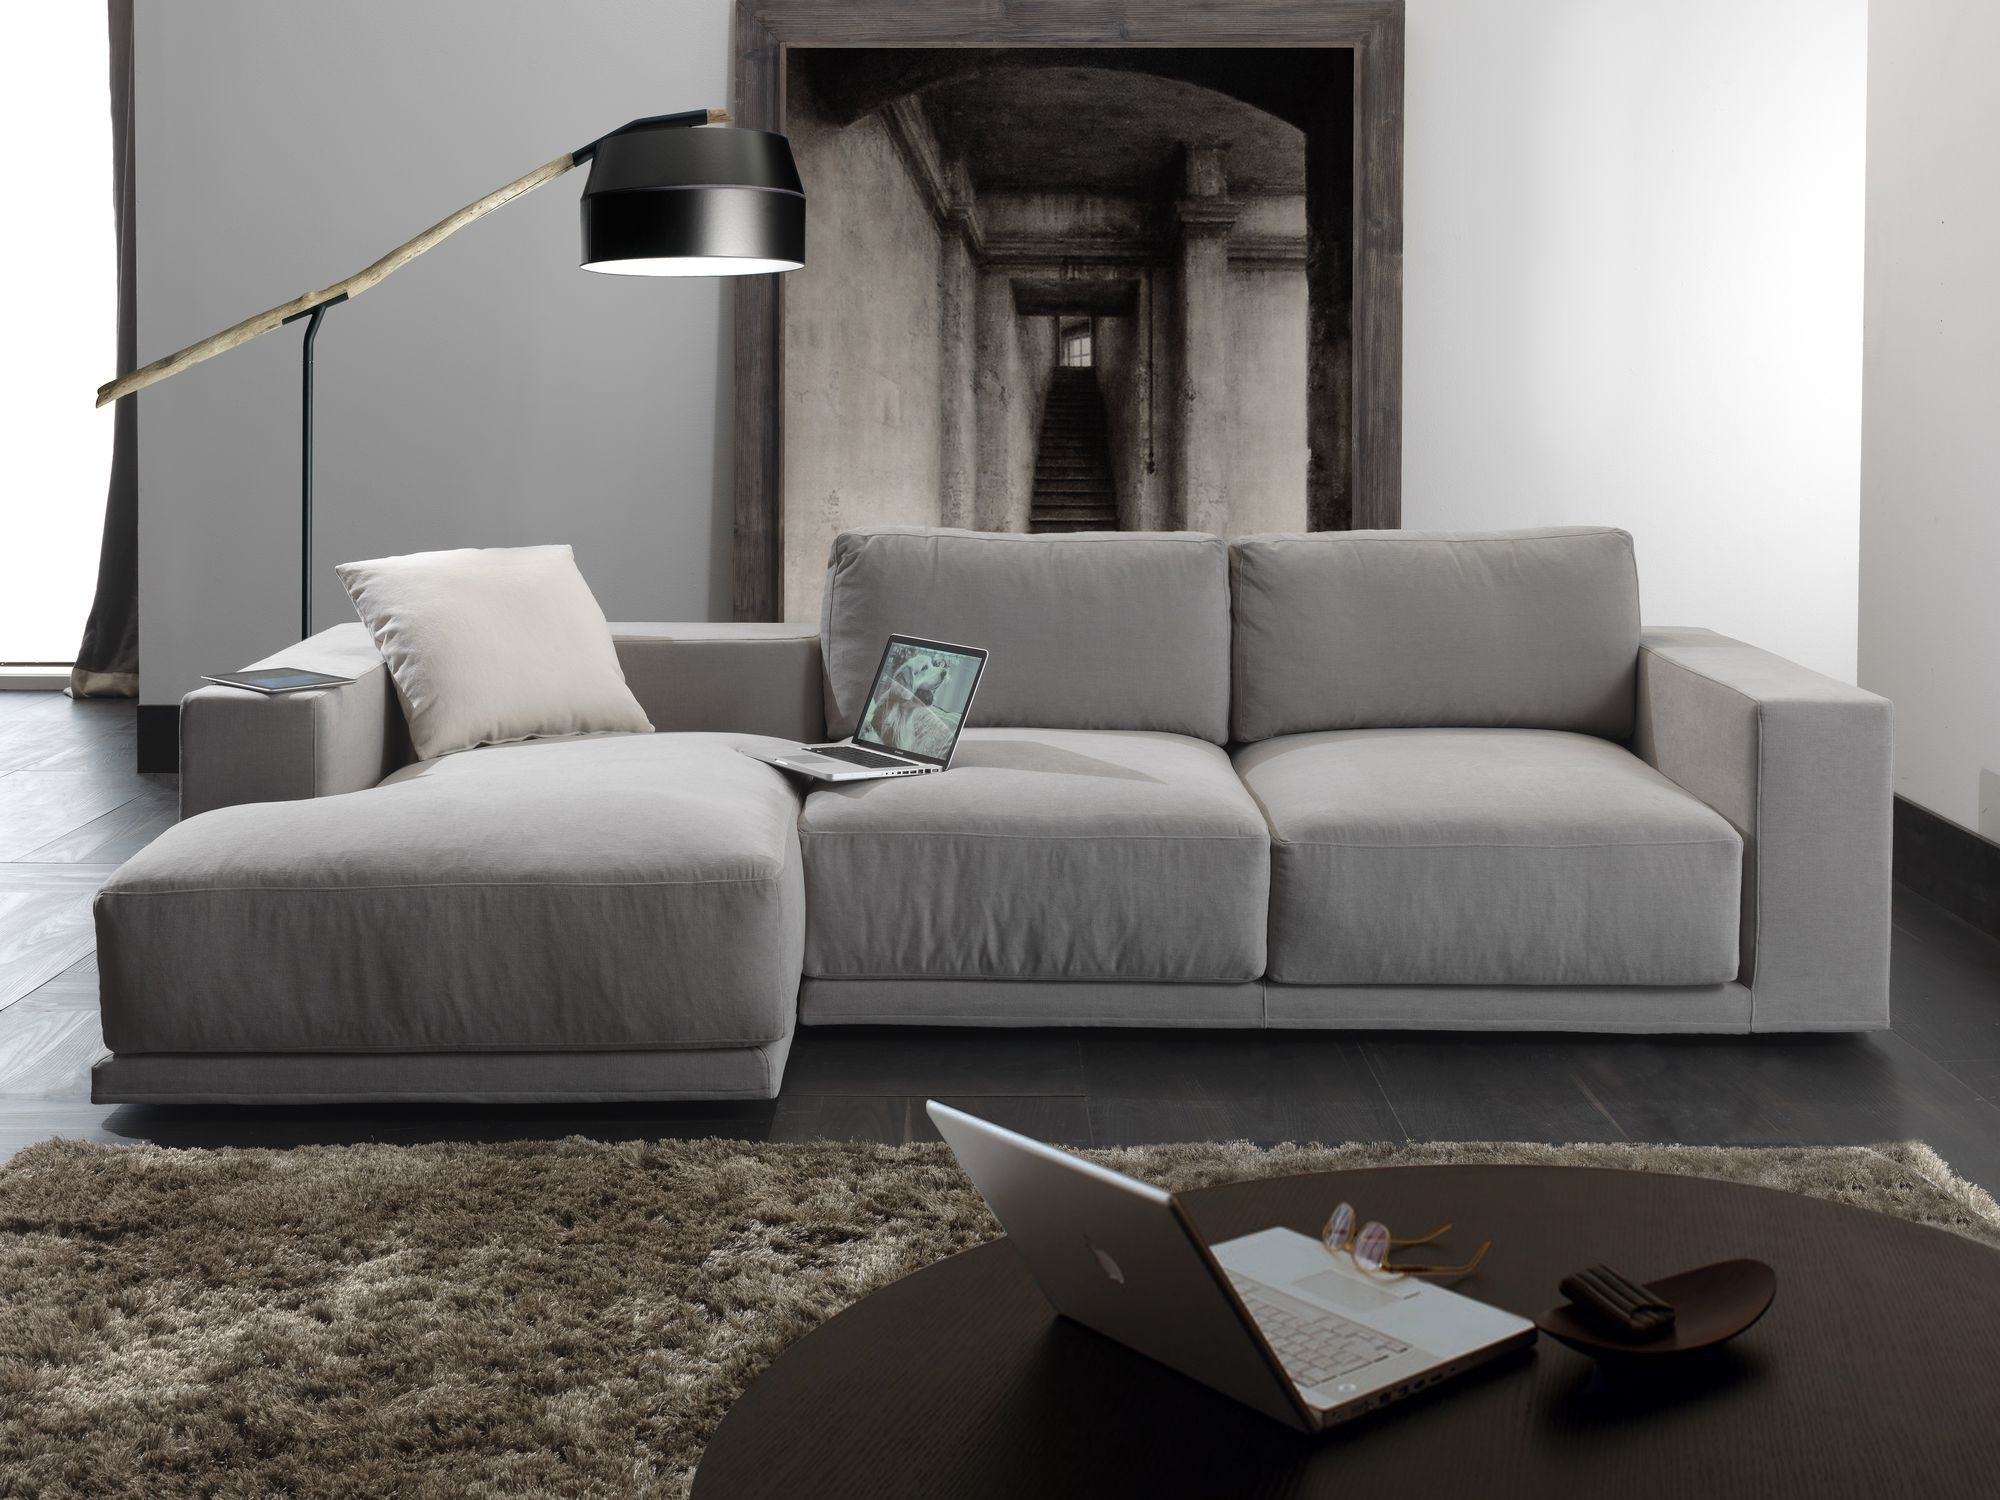 Modular Sofa / Contemporary / Fabric / 3 Seater – Relax Square Pertaining To Latest Contemporary Fabric Sofas (View 8 of 15)